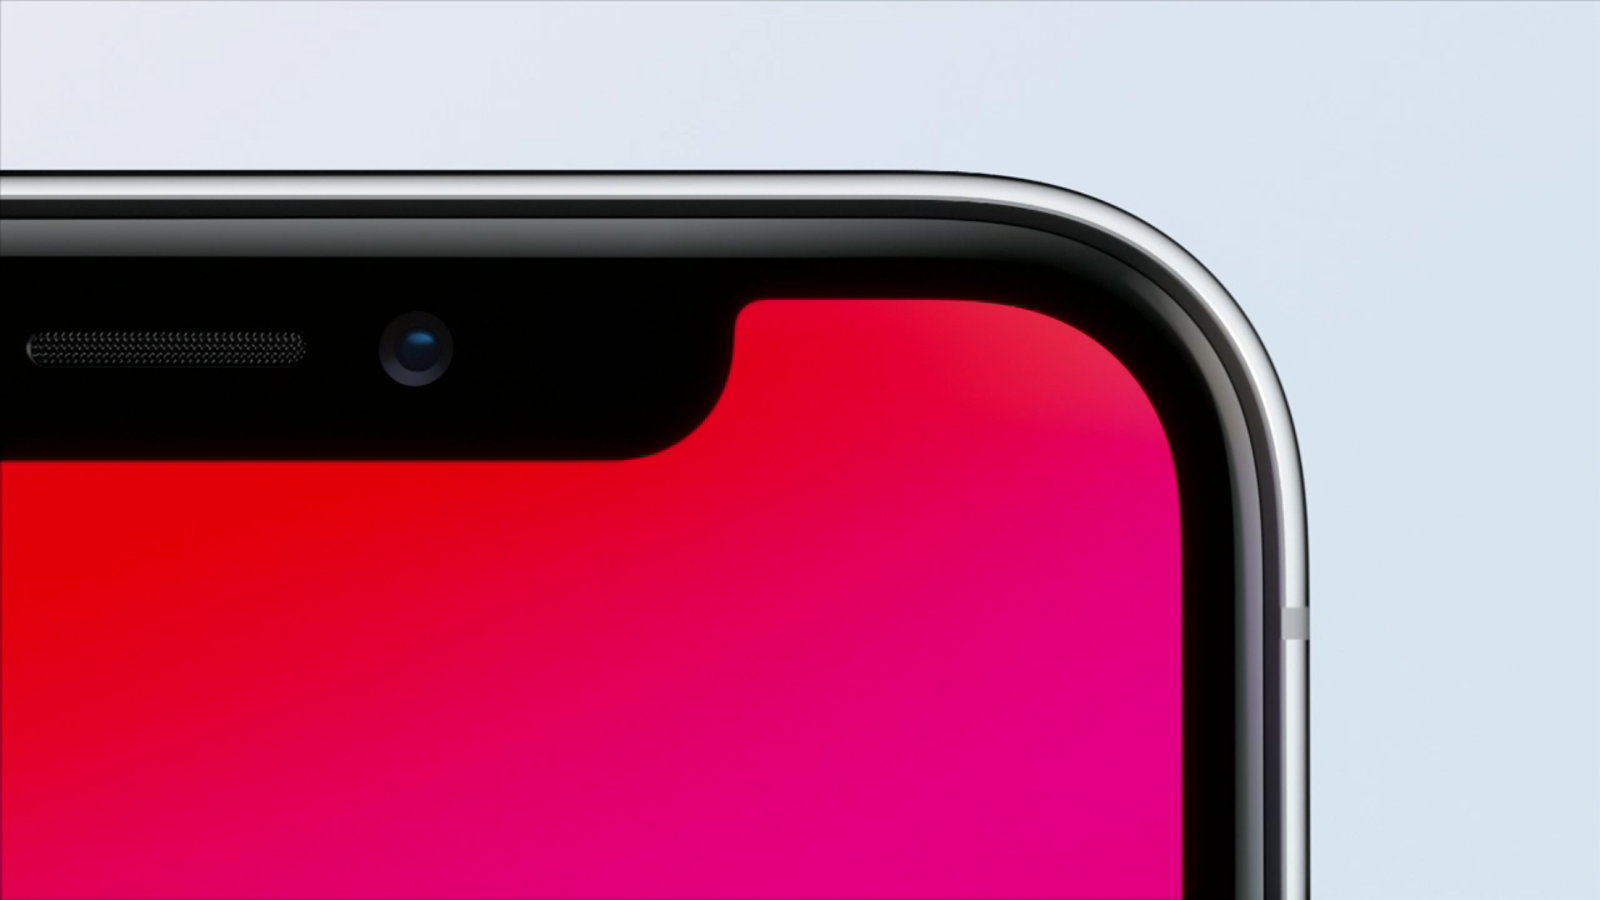 iPhone X (iPhone 10) has been launched by Apple just now. iPhone X comes with super retina display with 5.8 and new face id